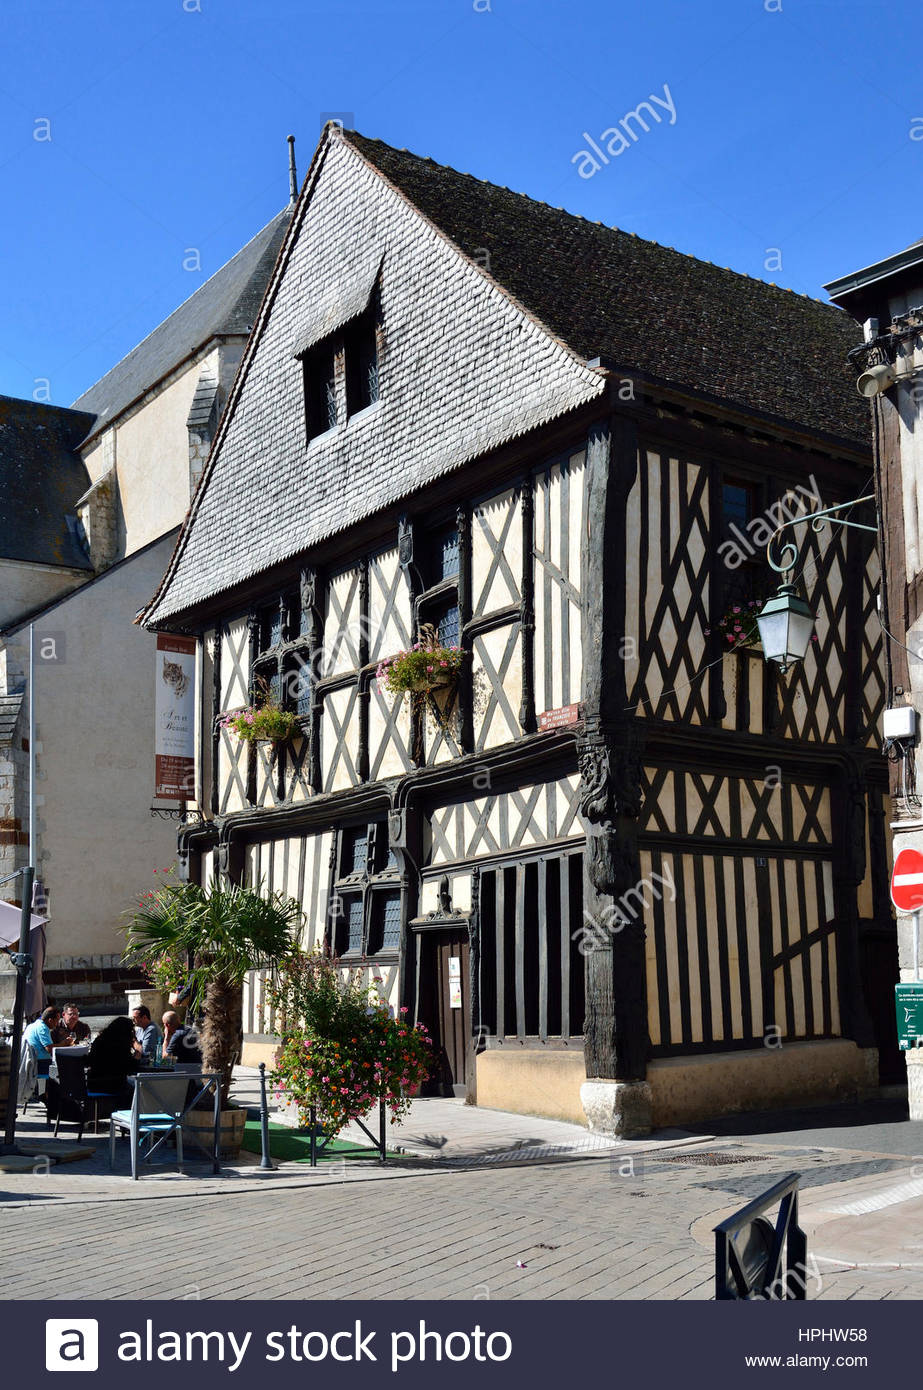 16th Century French Home - france-centres-cher-sologne-aubigny-sur-nere-half-timbered-house-known-HPHW58_Cool 16th Century French Home - france-centres-cher-sologne-aubigny-sur-nere-half-timbered-house-known-HPHW58  2018_39872.jpg